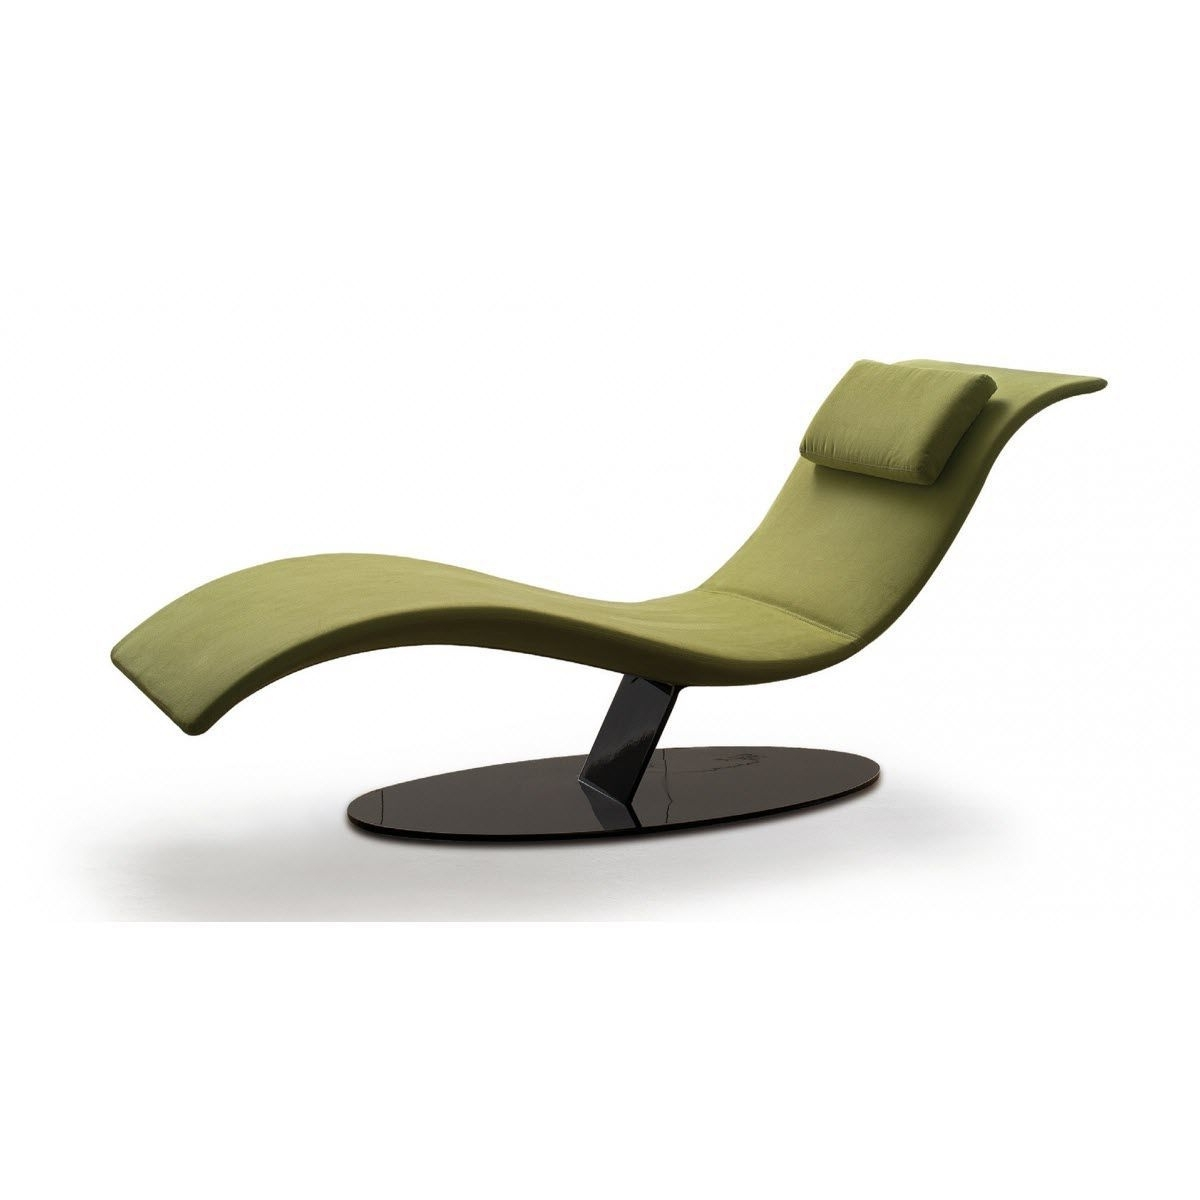 Latest Remarkable Contemporary Lounge Chair Pictures Design Ideas For Contemporary Chaise Lounge Chairs (View 8 of 15)